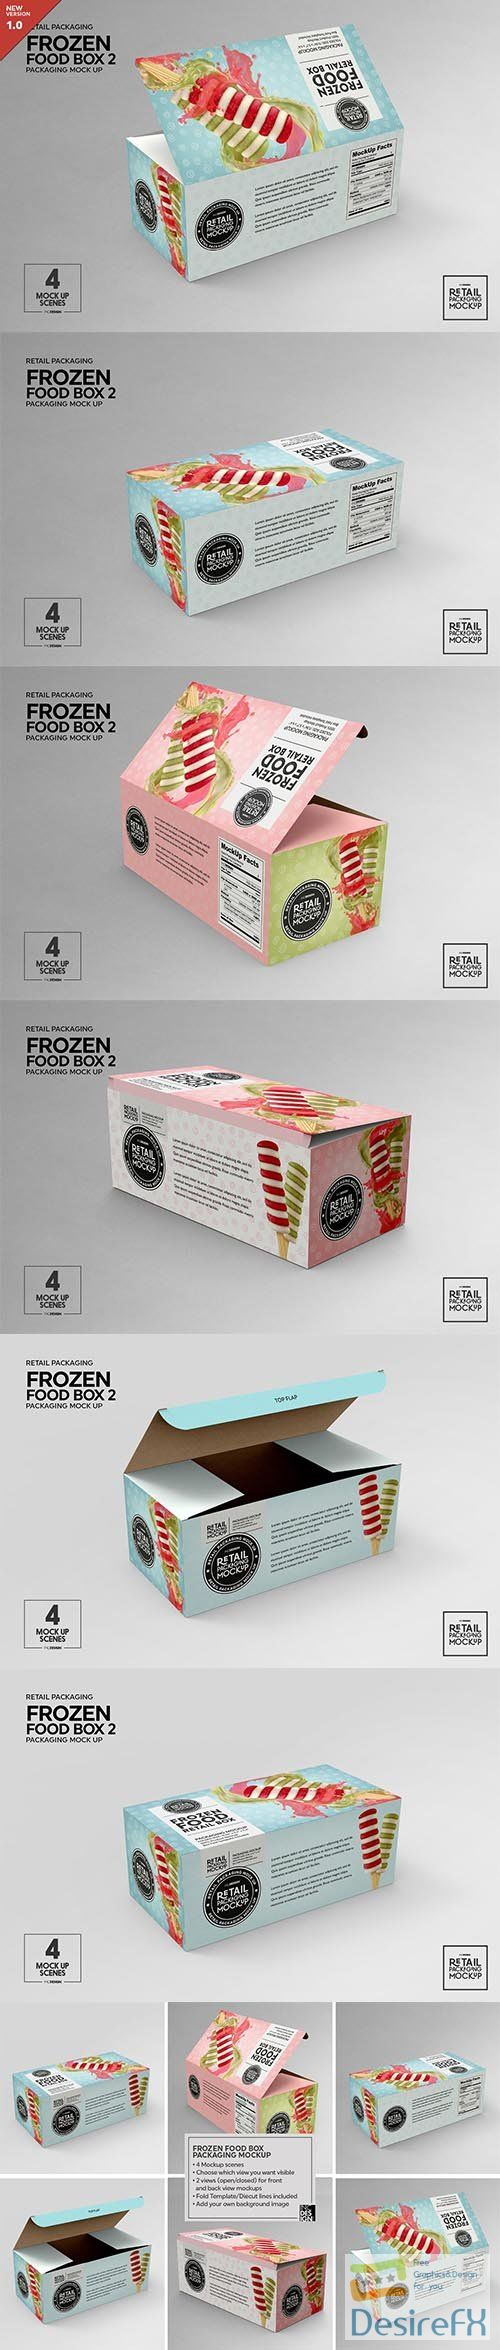 CreativeMarket - Retail Frozen Food Packaging2 Mockup 5730740